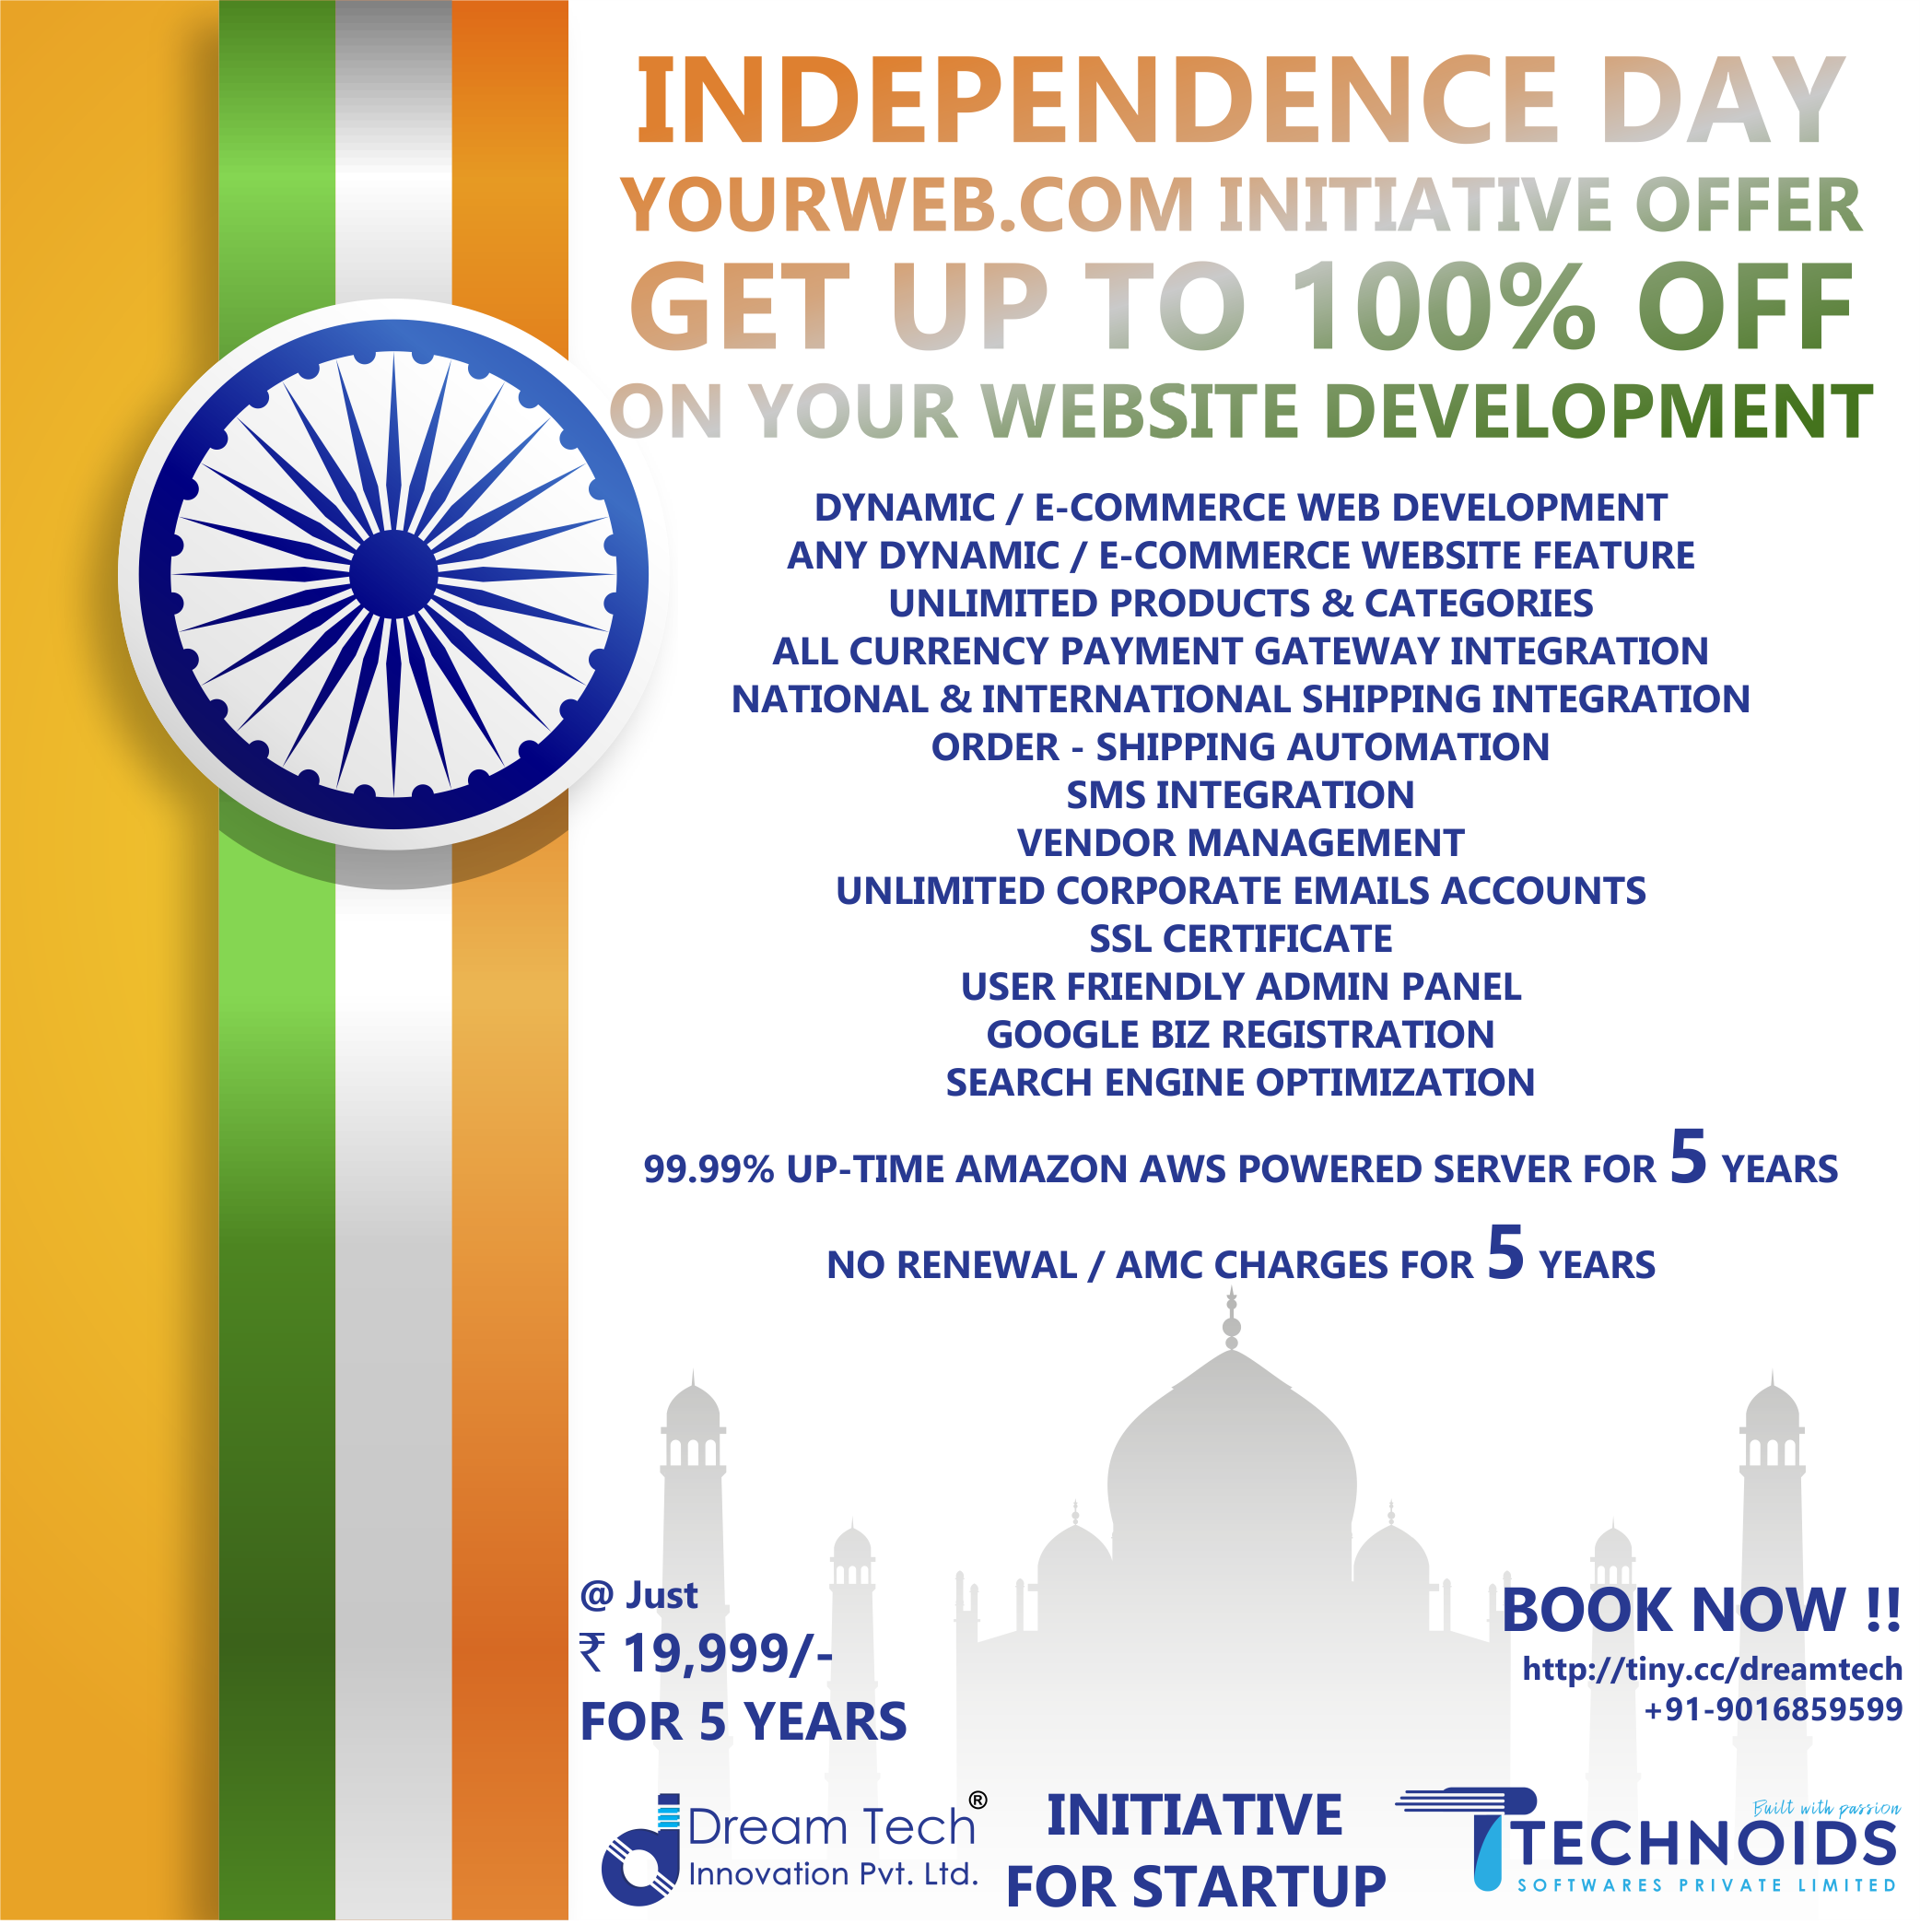 DREAM TECH INNOVATION PVT. LTD. & TECHNOIDS SOFTWARES PVT. LTD. PRESENTS INDEPENDENCE DAY YOURWEB.COM INITIATIVE OFFER INITIATIVE FOR STARTUP 7th-15th August 2019 only! Get up to 100% off on your website development.